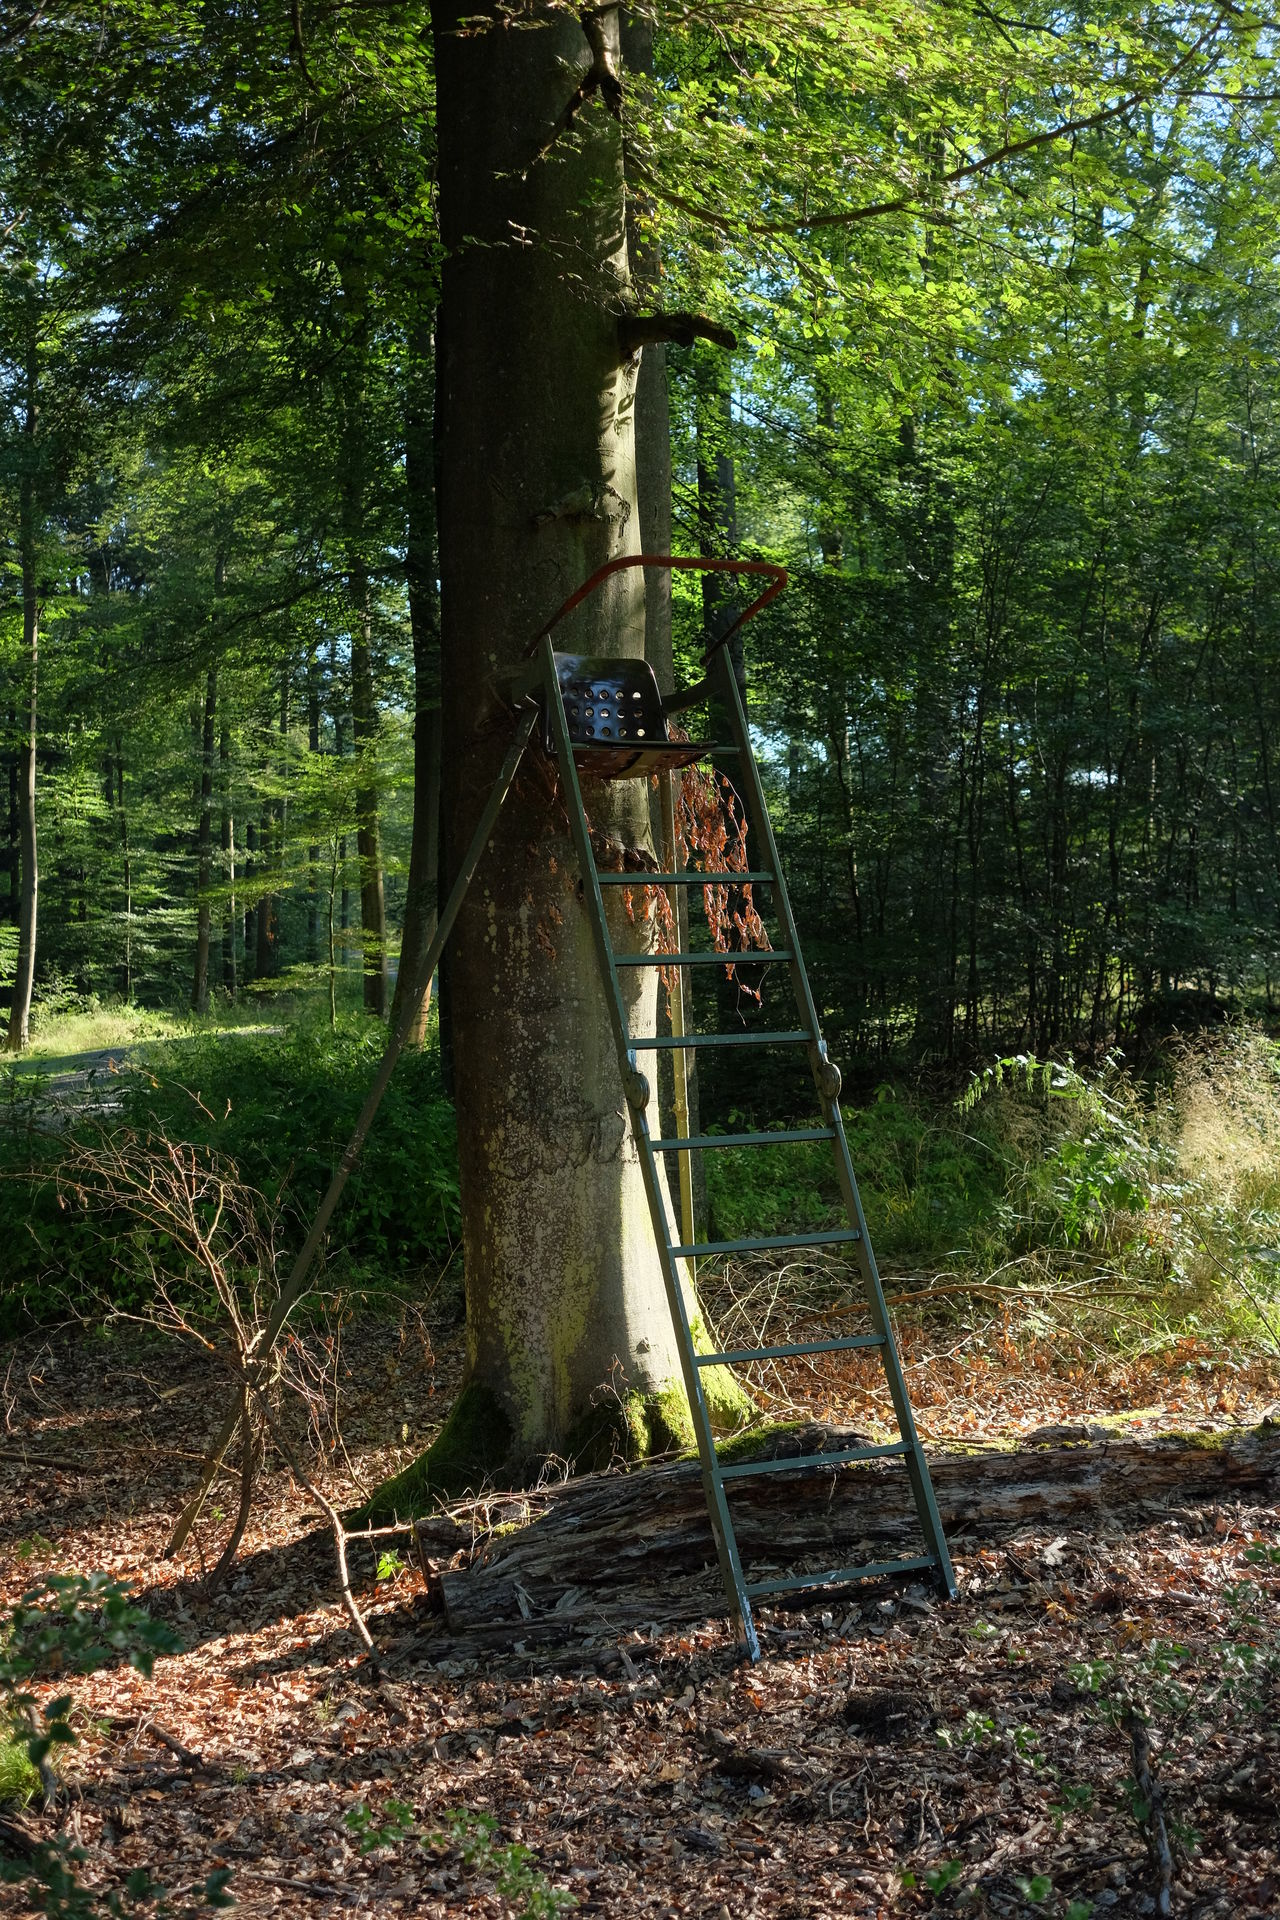 Portable hunting perch tied to a big beech tree Forestry Beech Tree Forest Hunting Metal Perch Nature Outdoors Portable Hunting Perch Tree Trunk Wildlife Control Wildlife Management